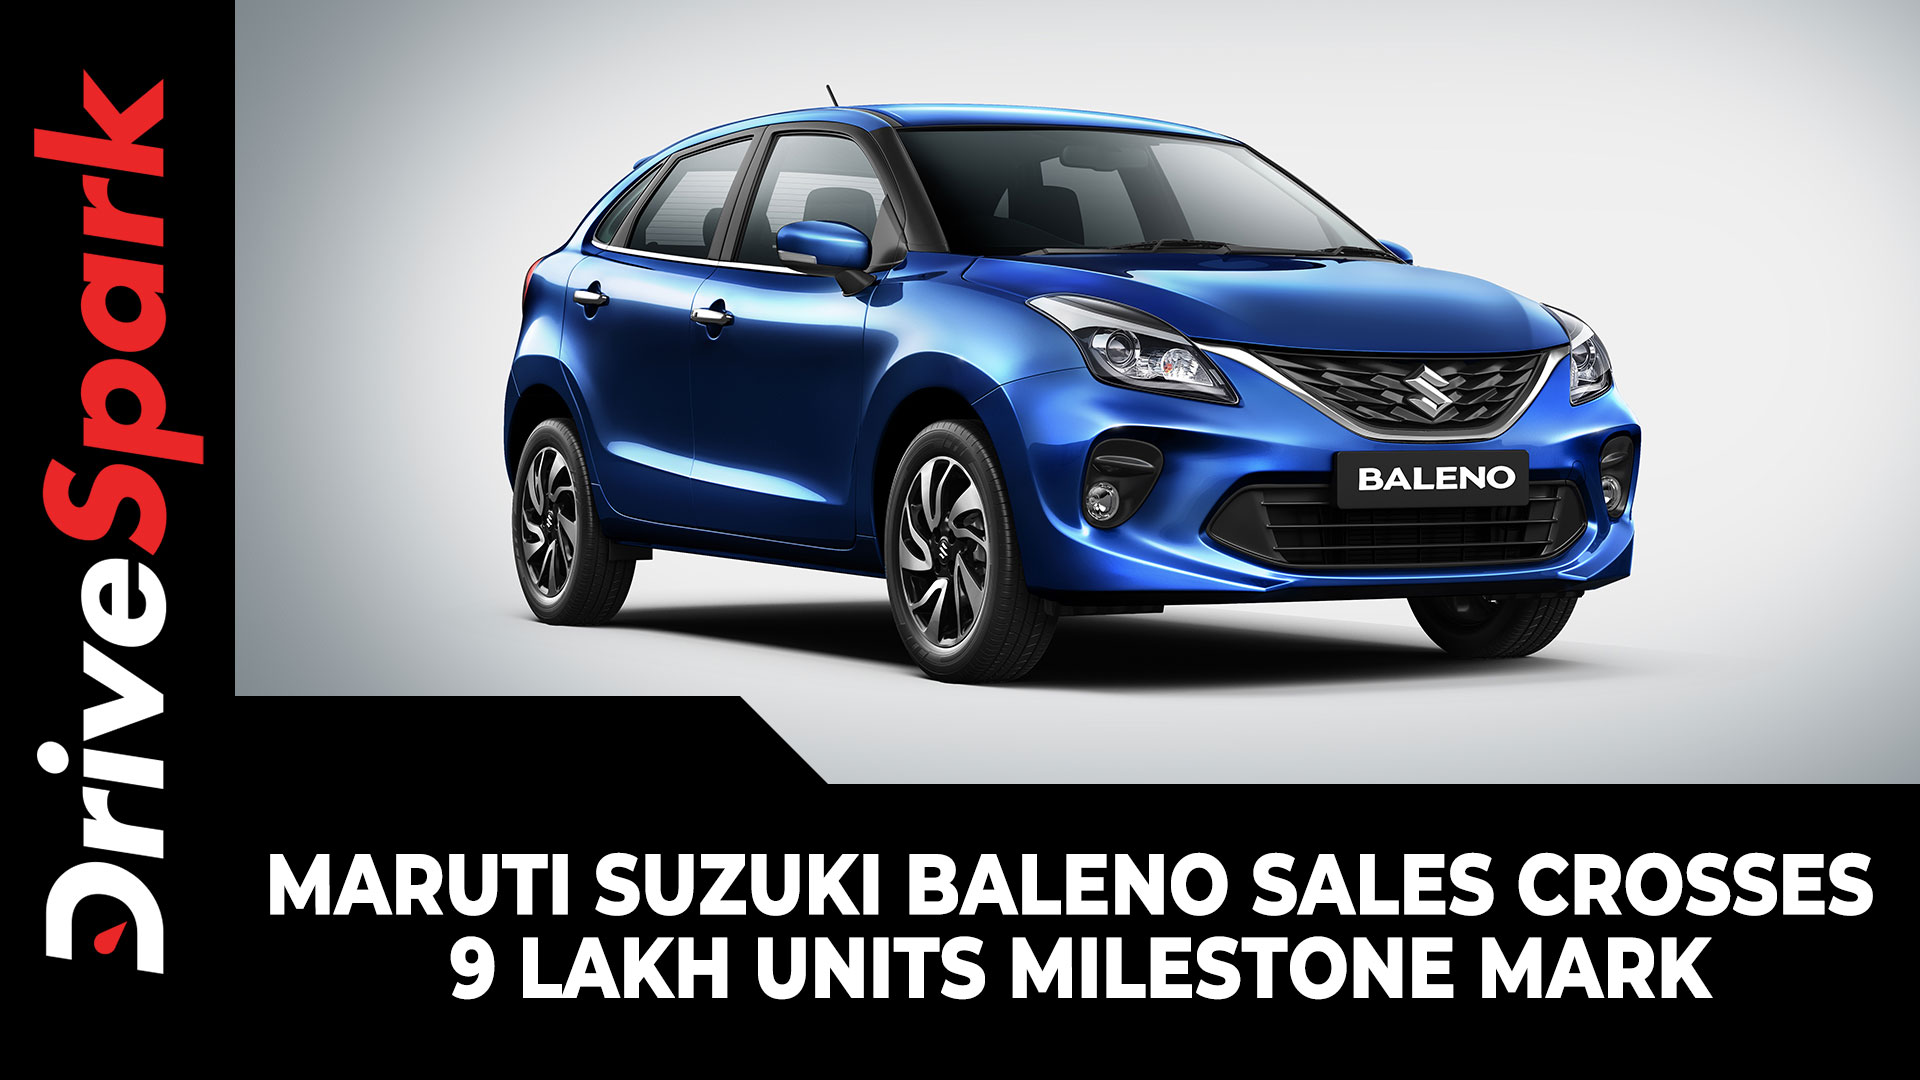 Maruti Suzuki Baleno Sales Crosses 9 Lakh Units Milestone Mark | Here Are All Details